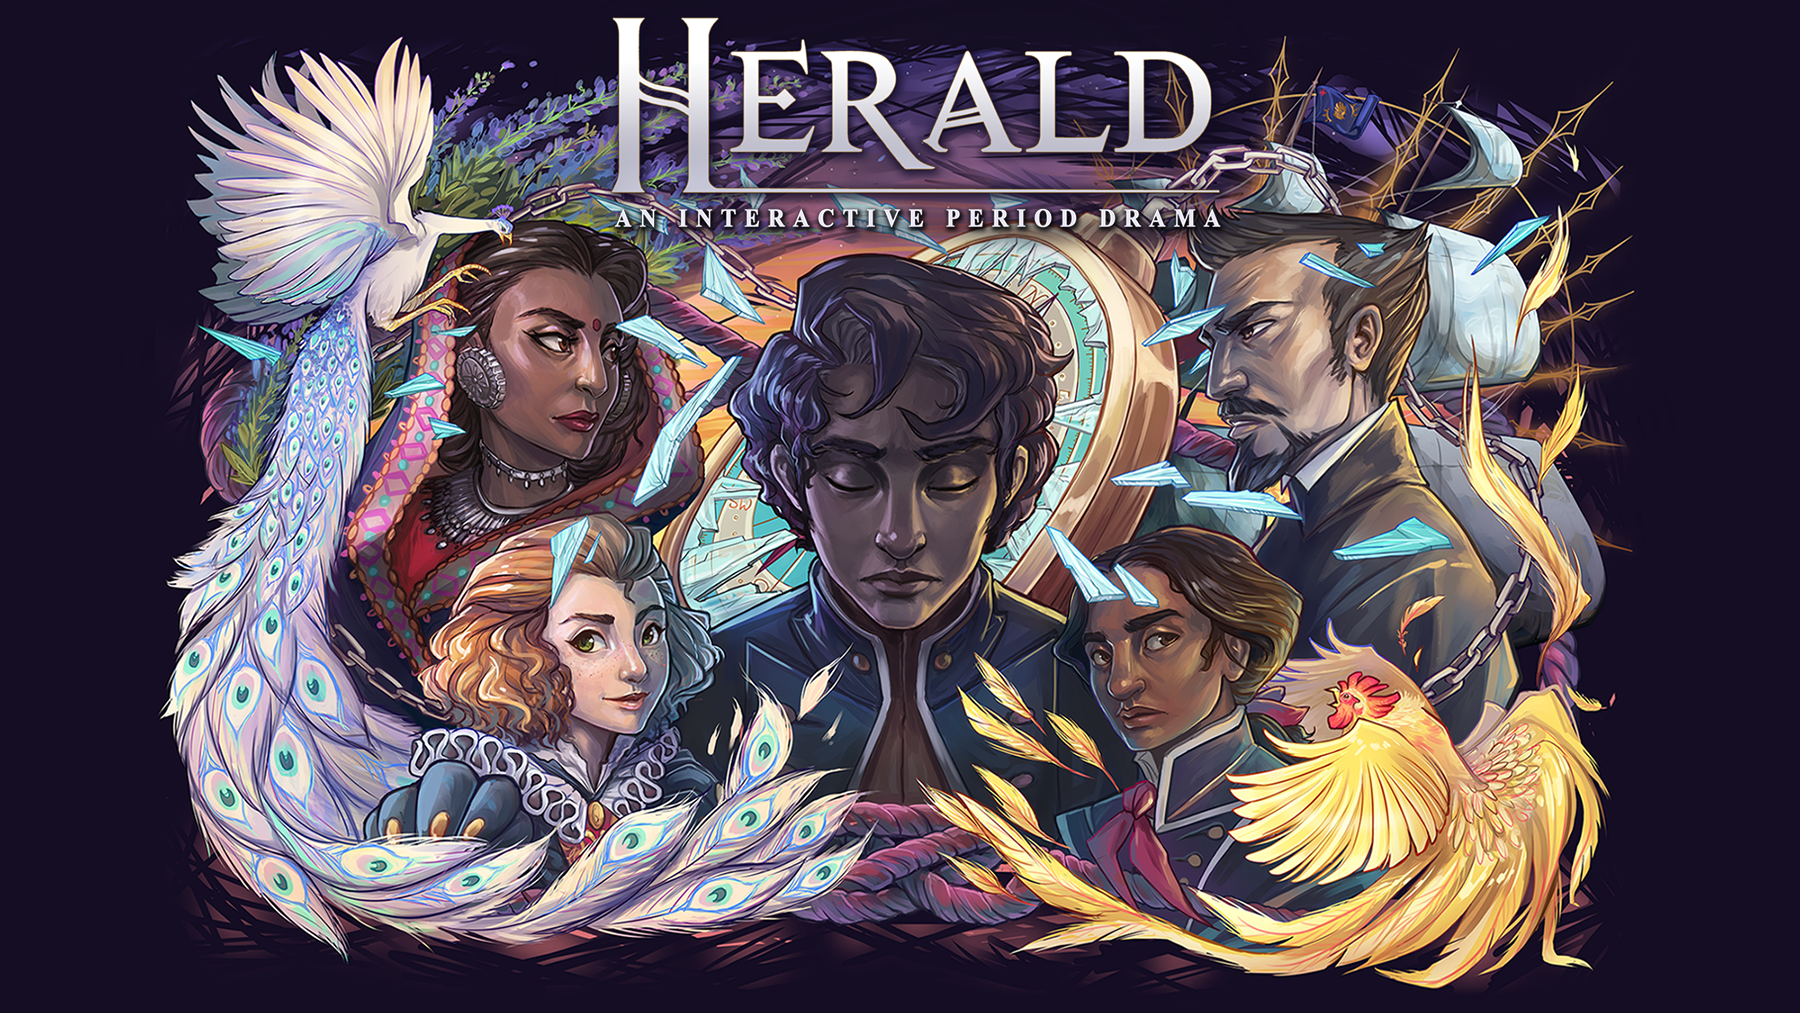 Herald - An Interactive Period Drama - Book I & II